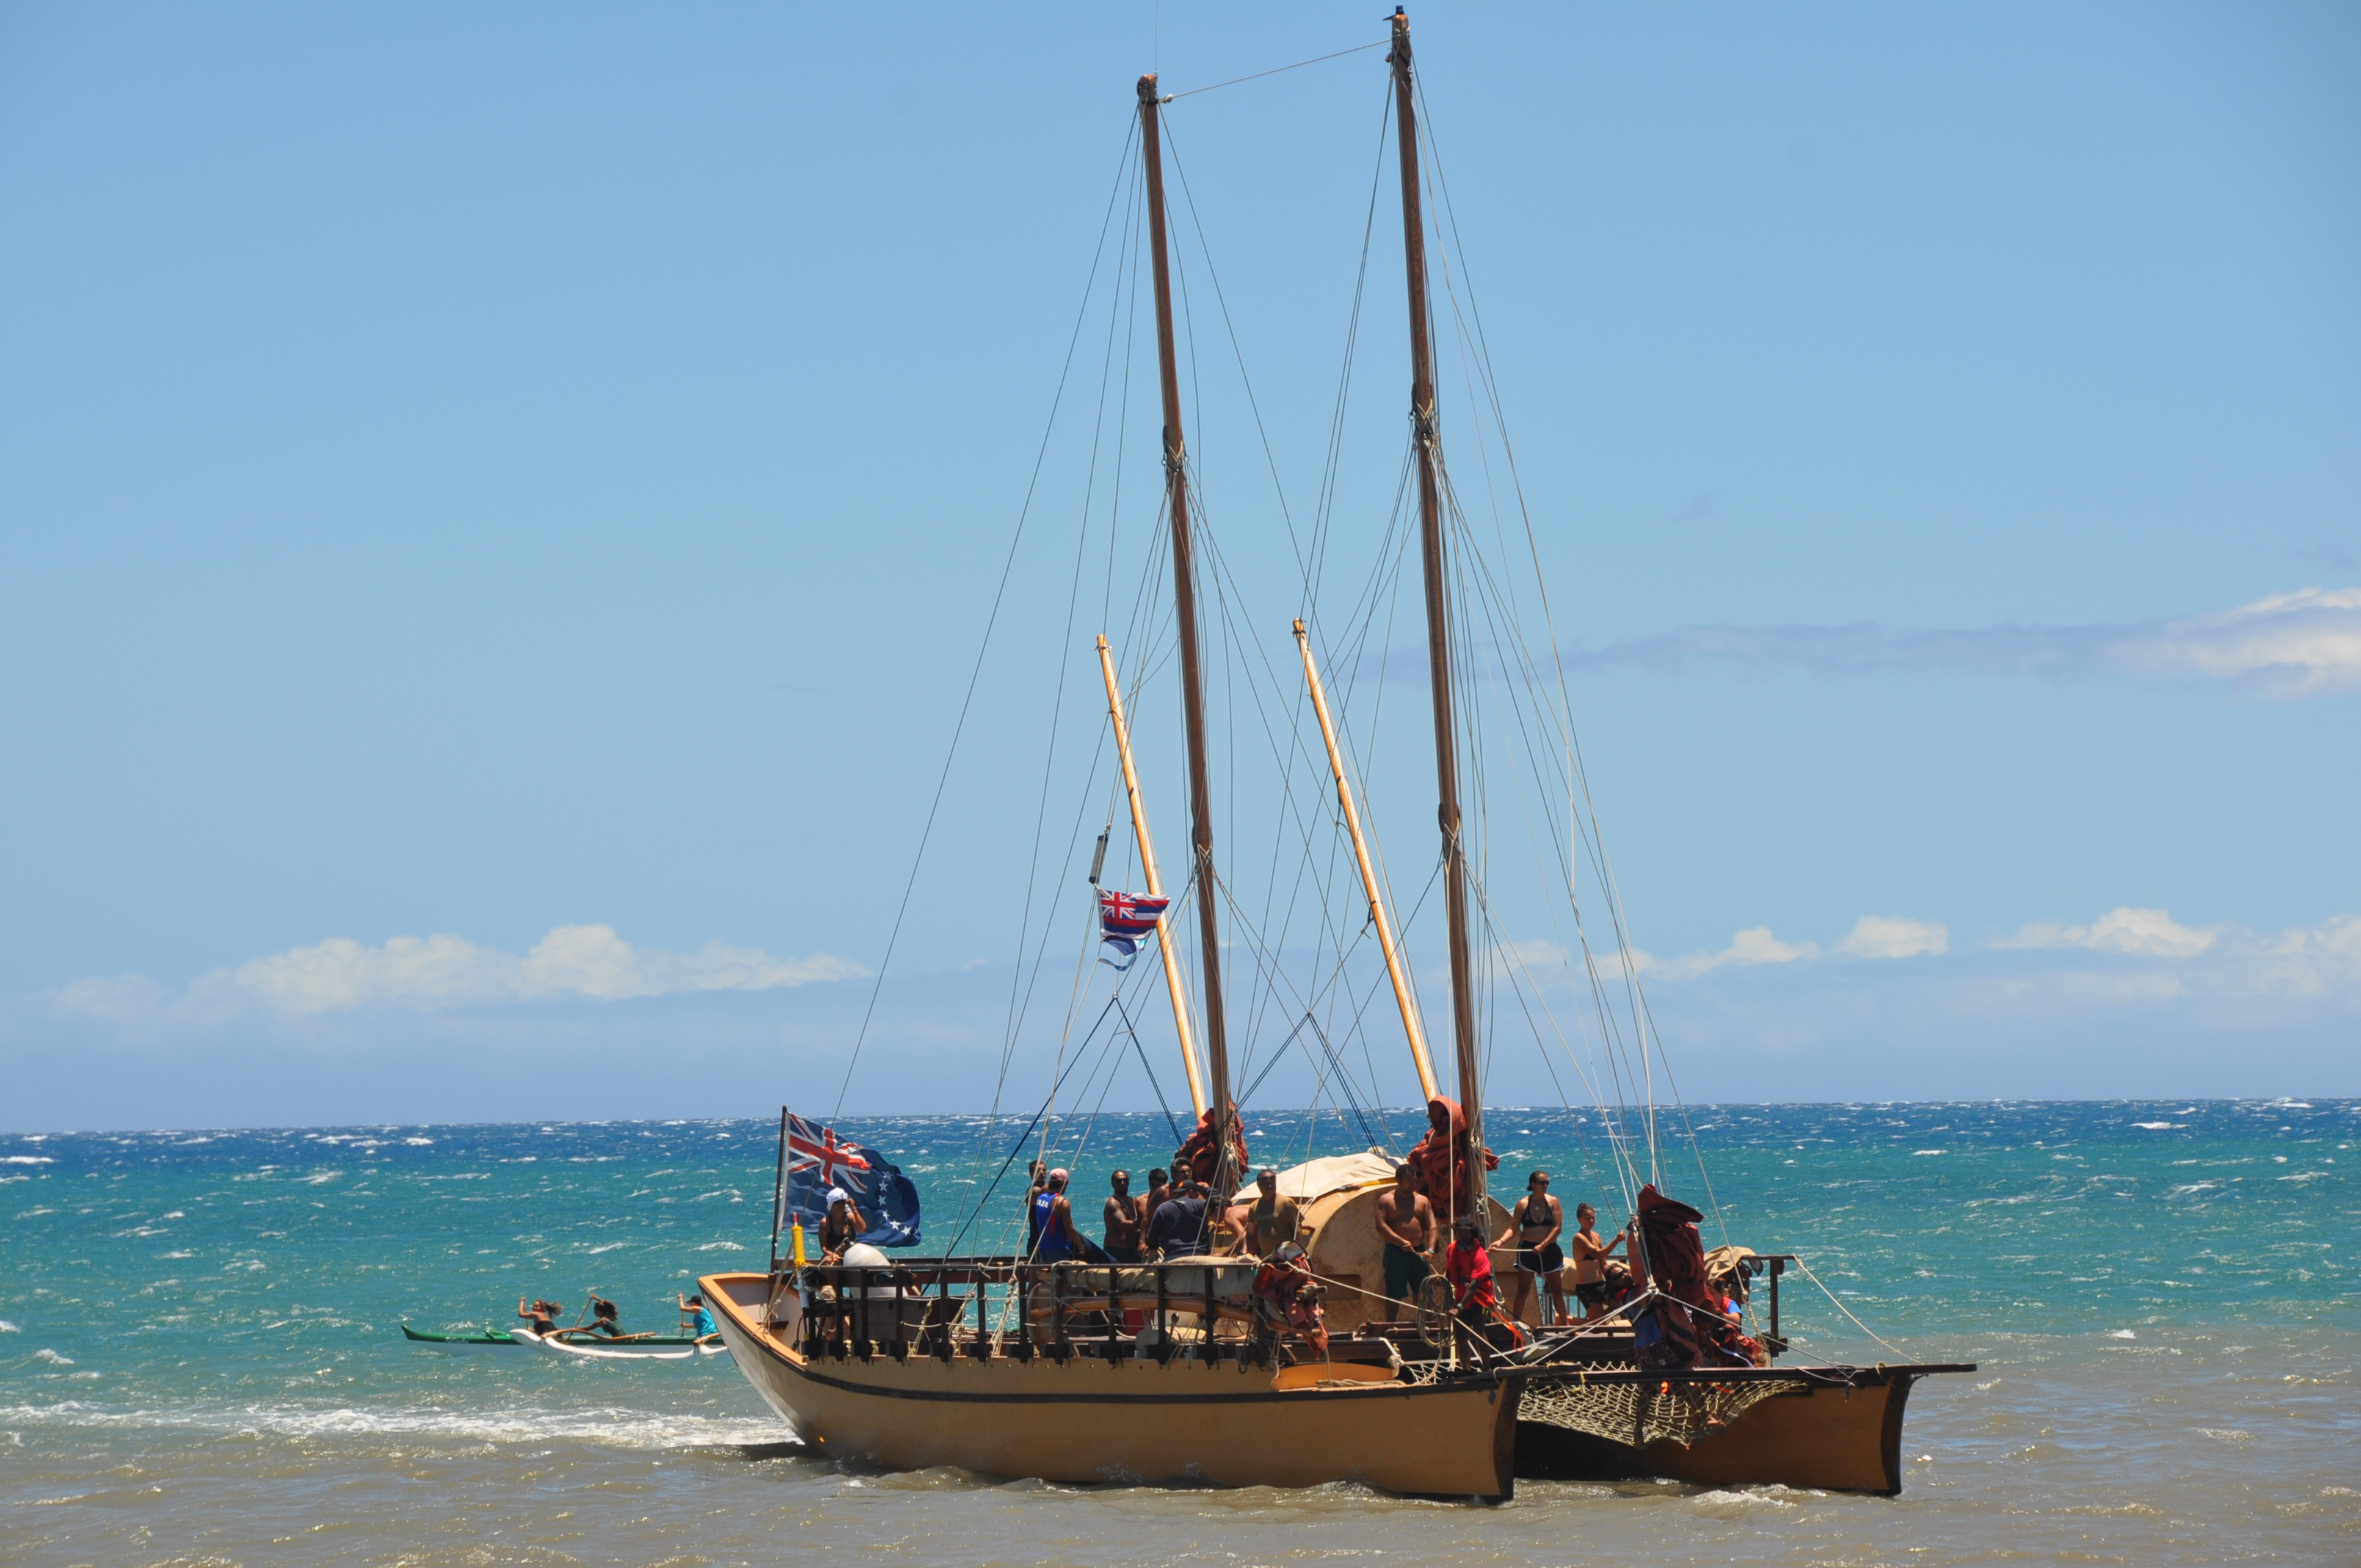 Pacific Voyagers enter Kaunakakai Harbor for historic meeting between Polynesian brothers and sisters